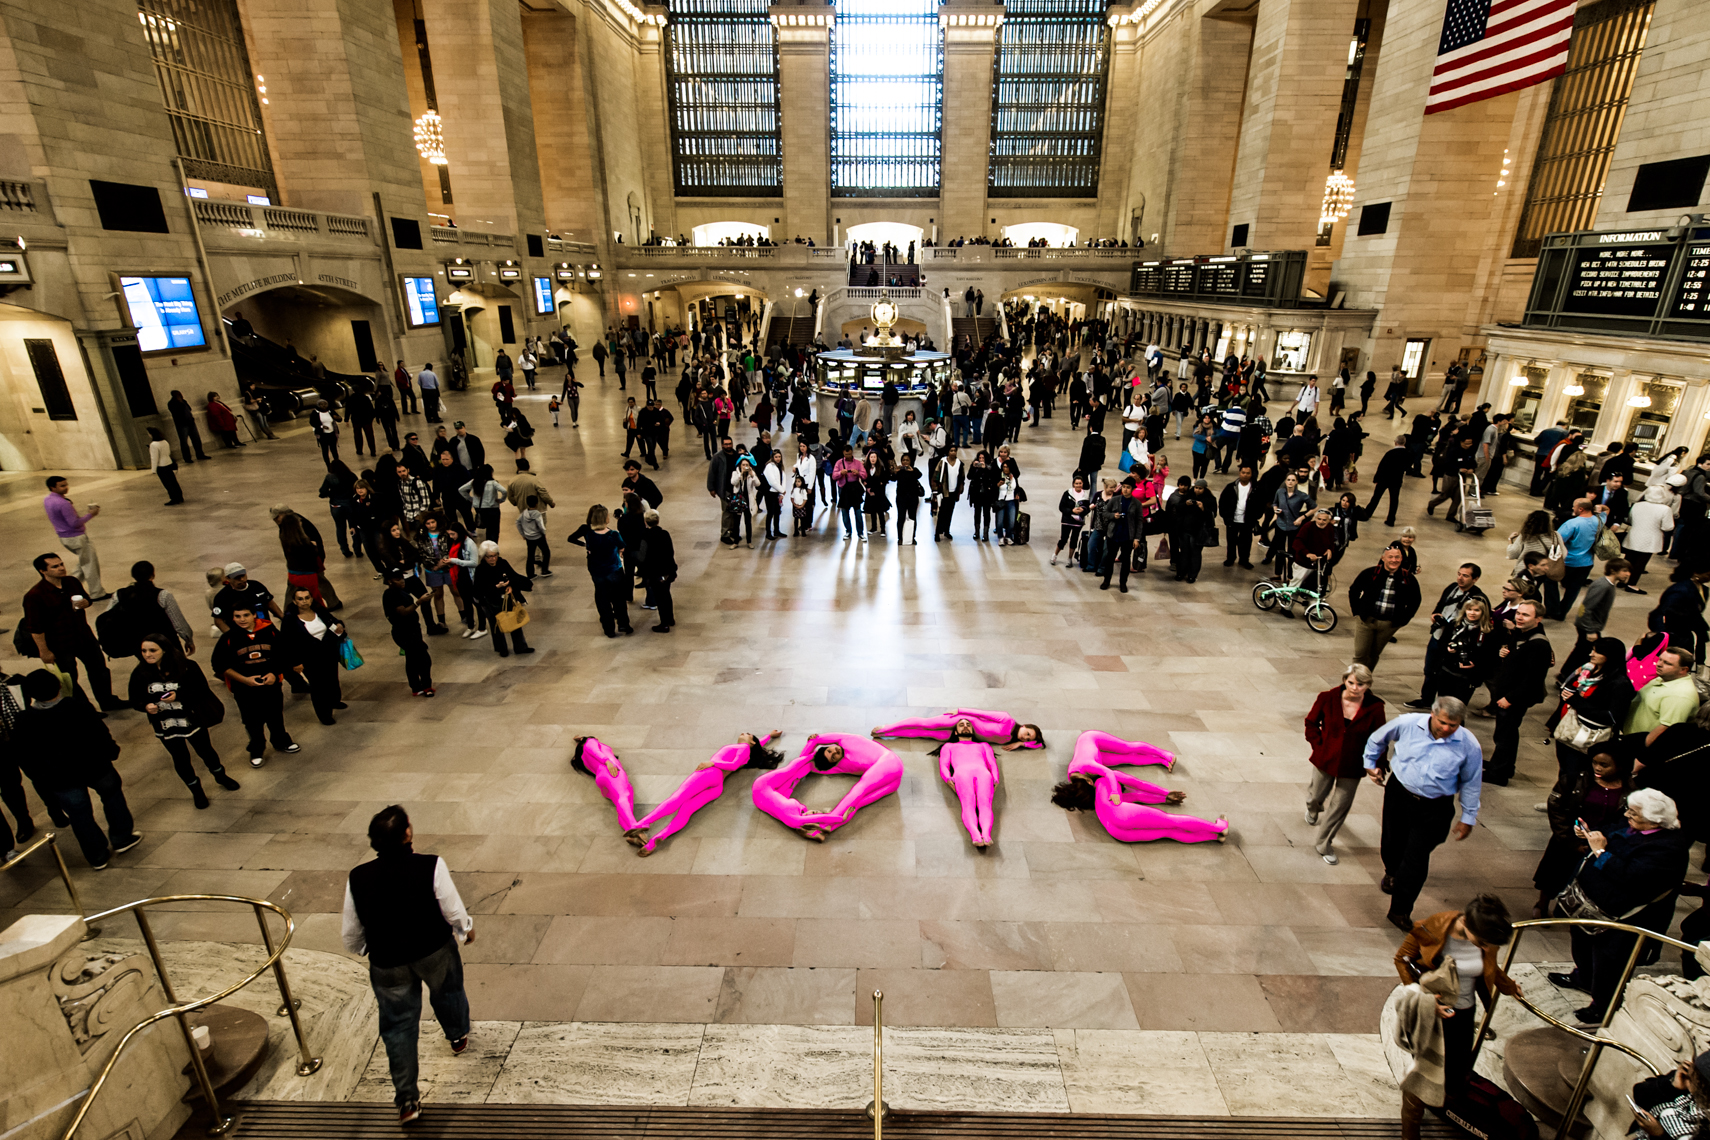 robert_whitman_pilobolus_pink_vote_grand_central_station_nyc